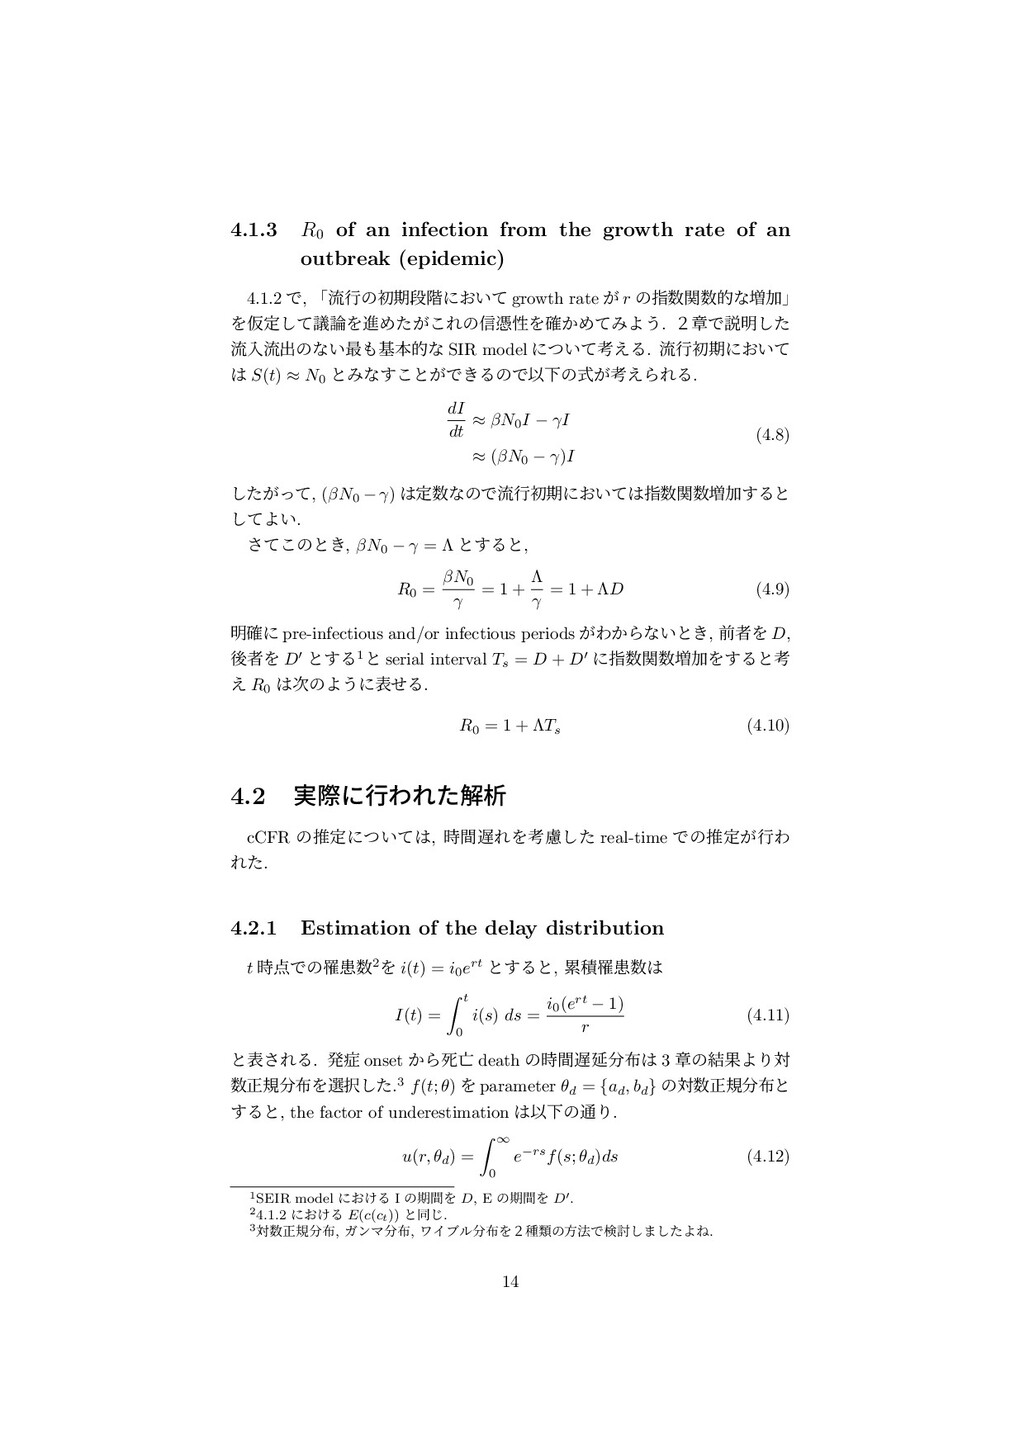 4.1.3 R0 of an infection from the growth rate o...